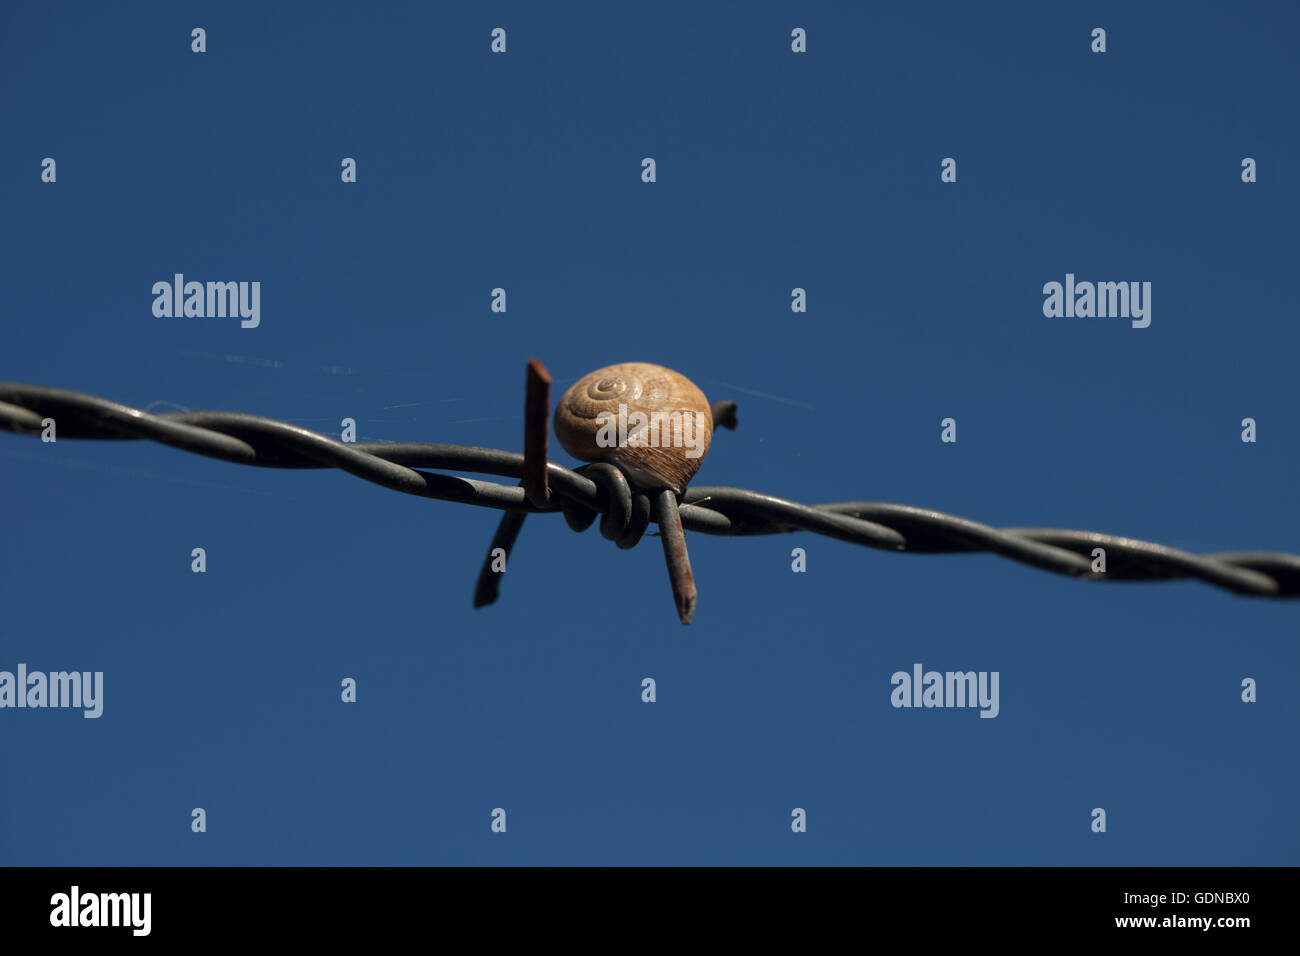 A snails perch on a barbed wire fence in Prado del Rey, Cadiz, Andalusia, Spain, July 16, 2013. - Stock Image